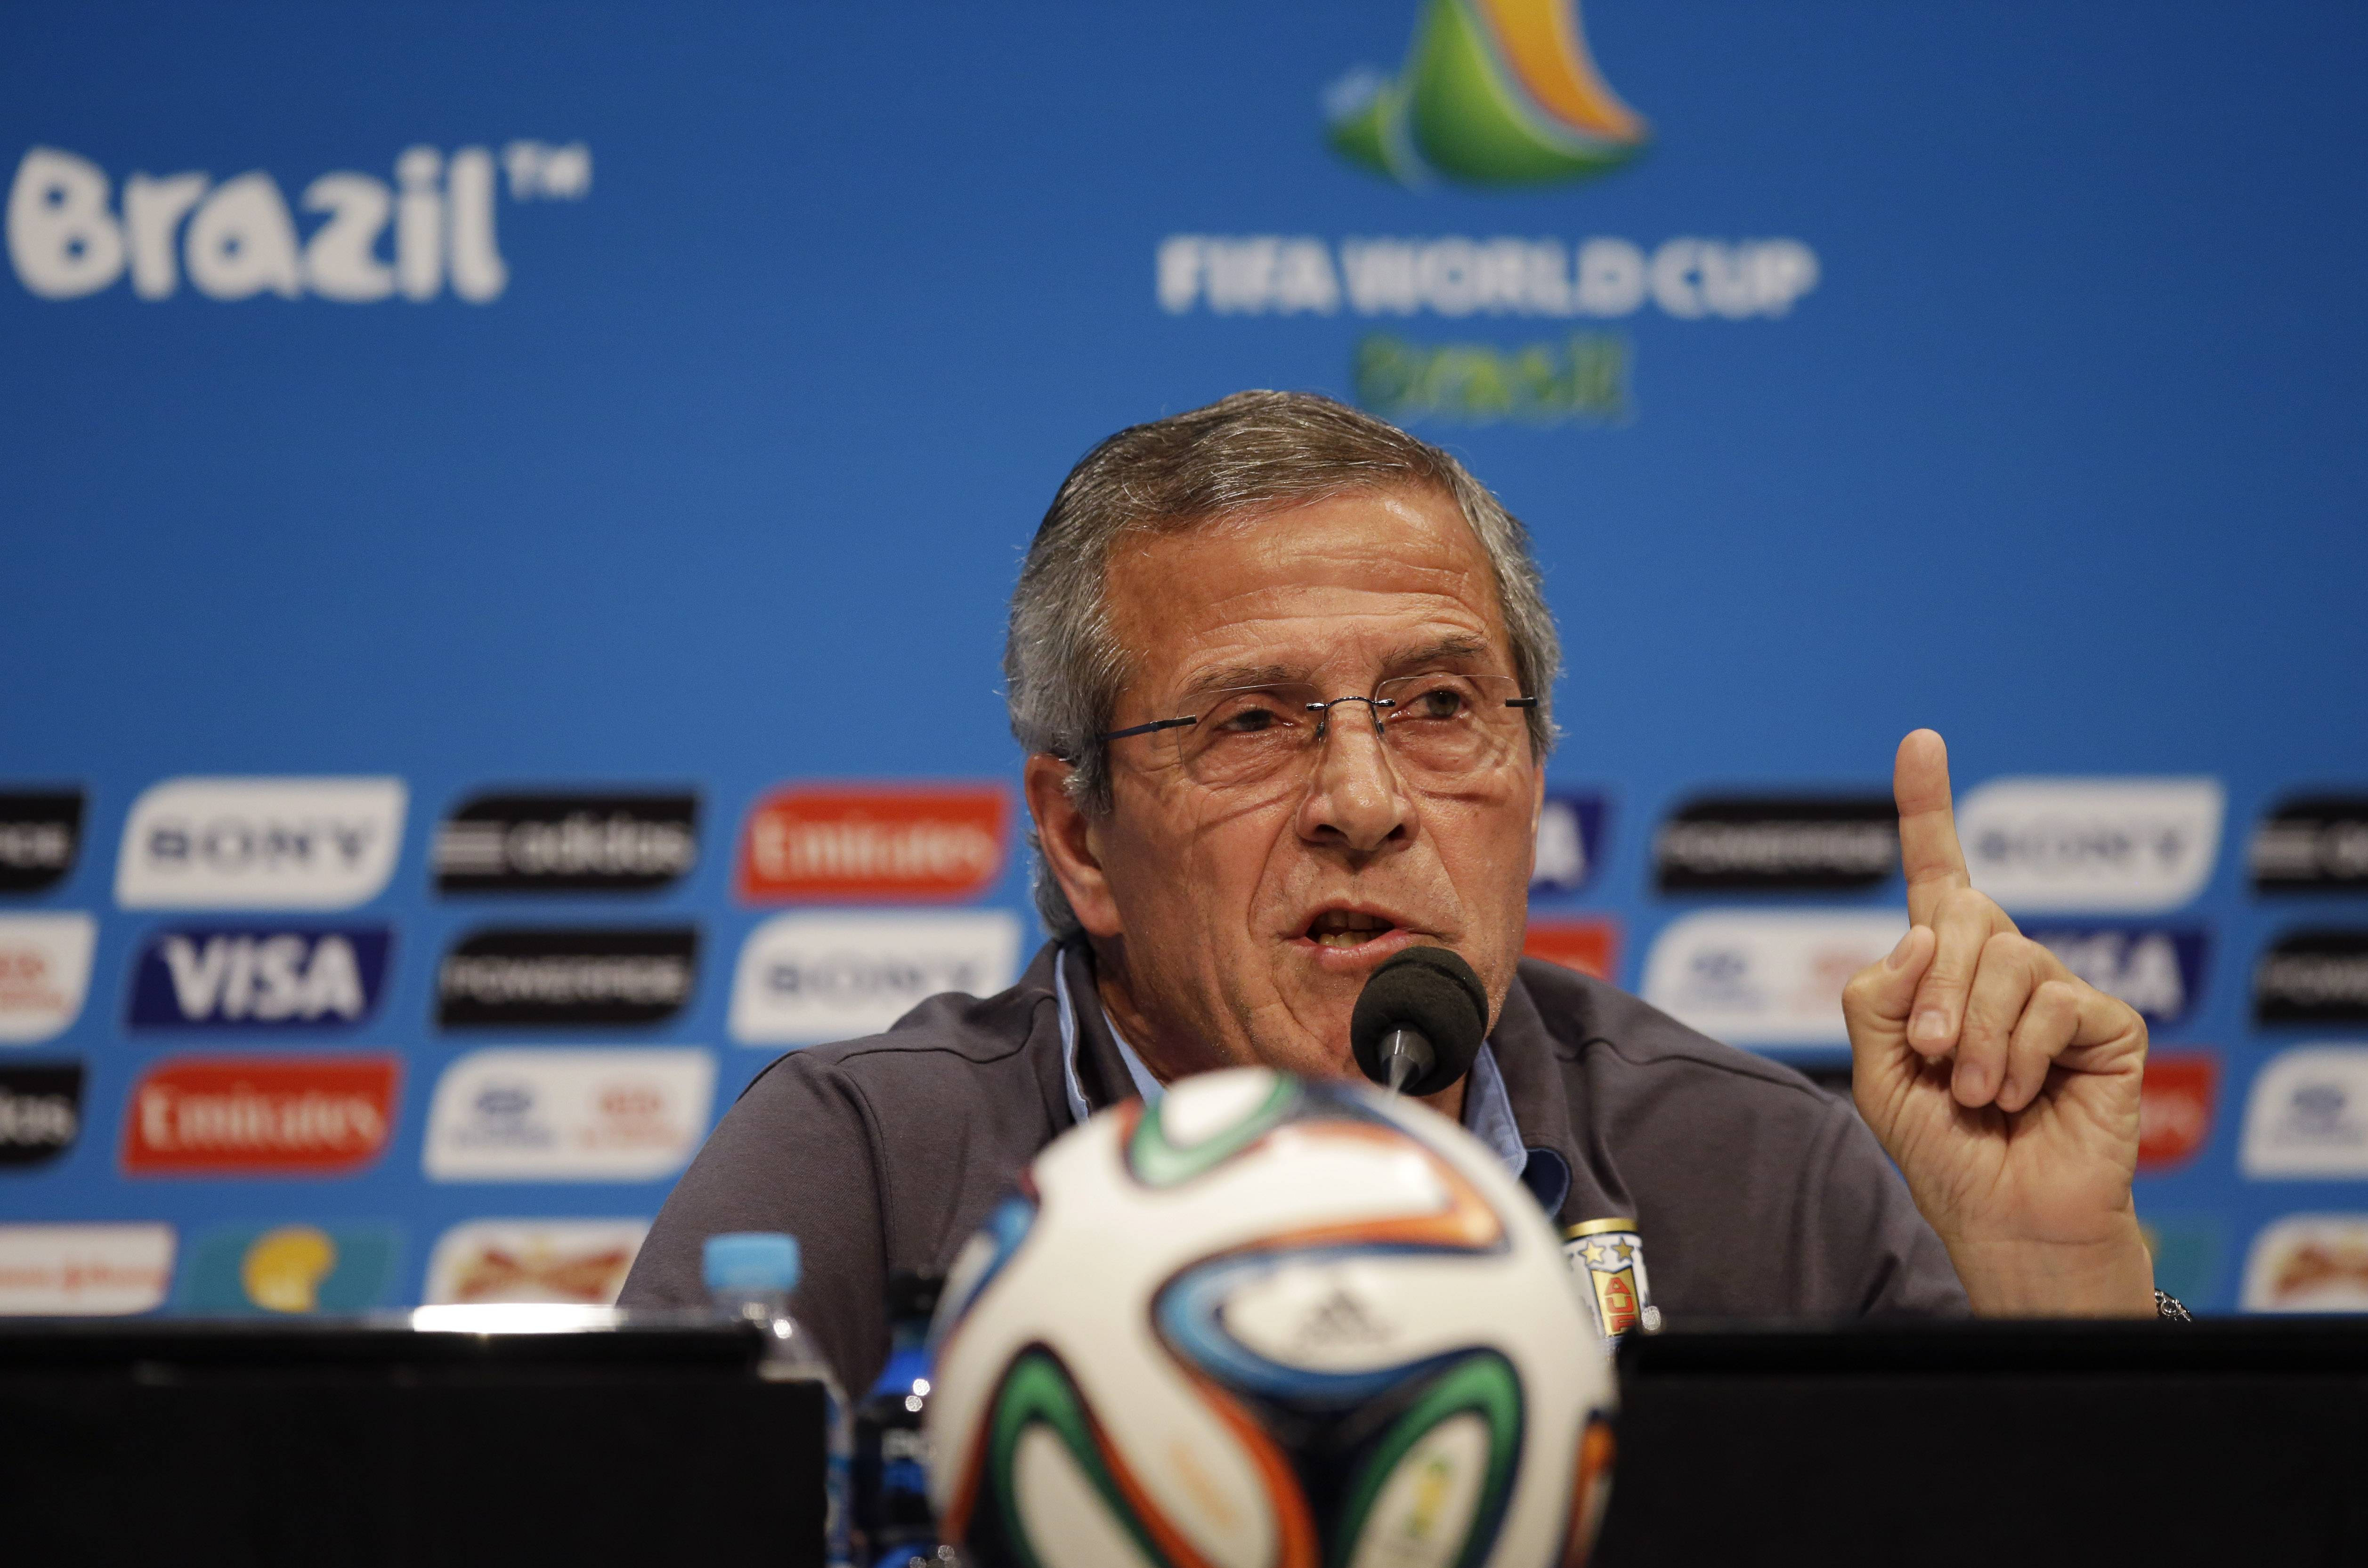 Uruguay's head coach Oscar Tabarez makes a statement during a press conference the day before the round of 16 World Cup soccer match between Colombia and Uruguay at the Maracana Stadium in Rio de Janeiro, Brazil, Friday, June 27, 2014. FIFA banned Uruguay striker Luis Suarez from all football activities for four months on Thursday for biting an opponent at the World Cup, a punishment that rules him out of the rest of the tournament and the start of the upcoming Premier League season. (AP Photo/Matt Dunham)